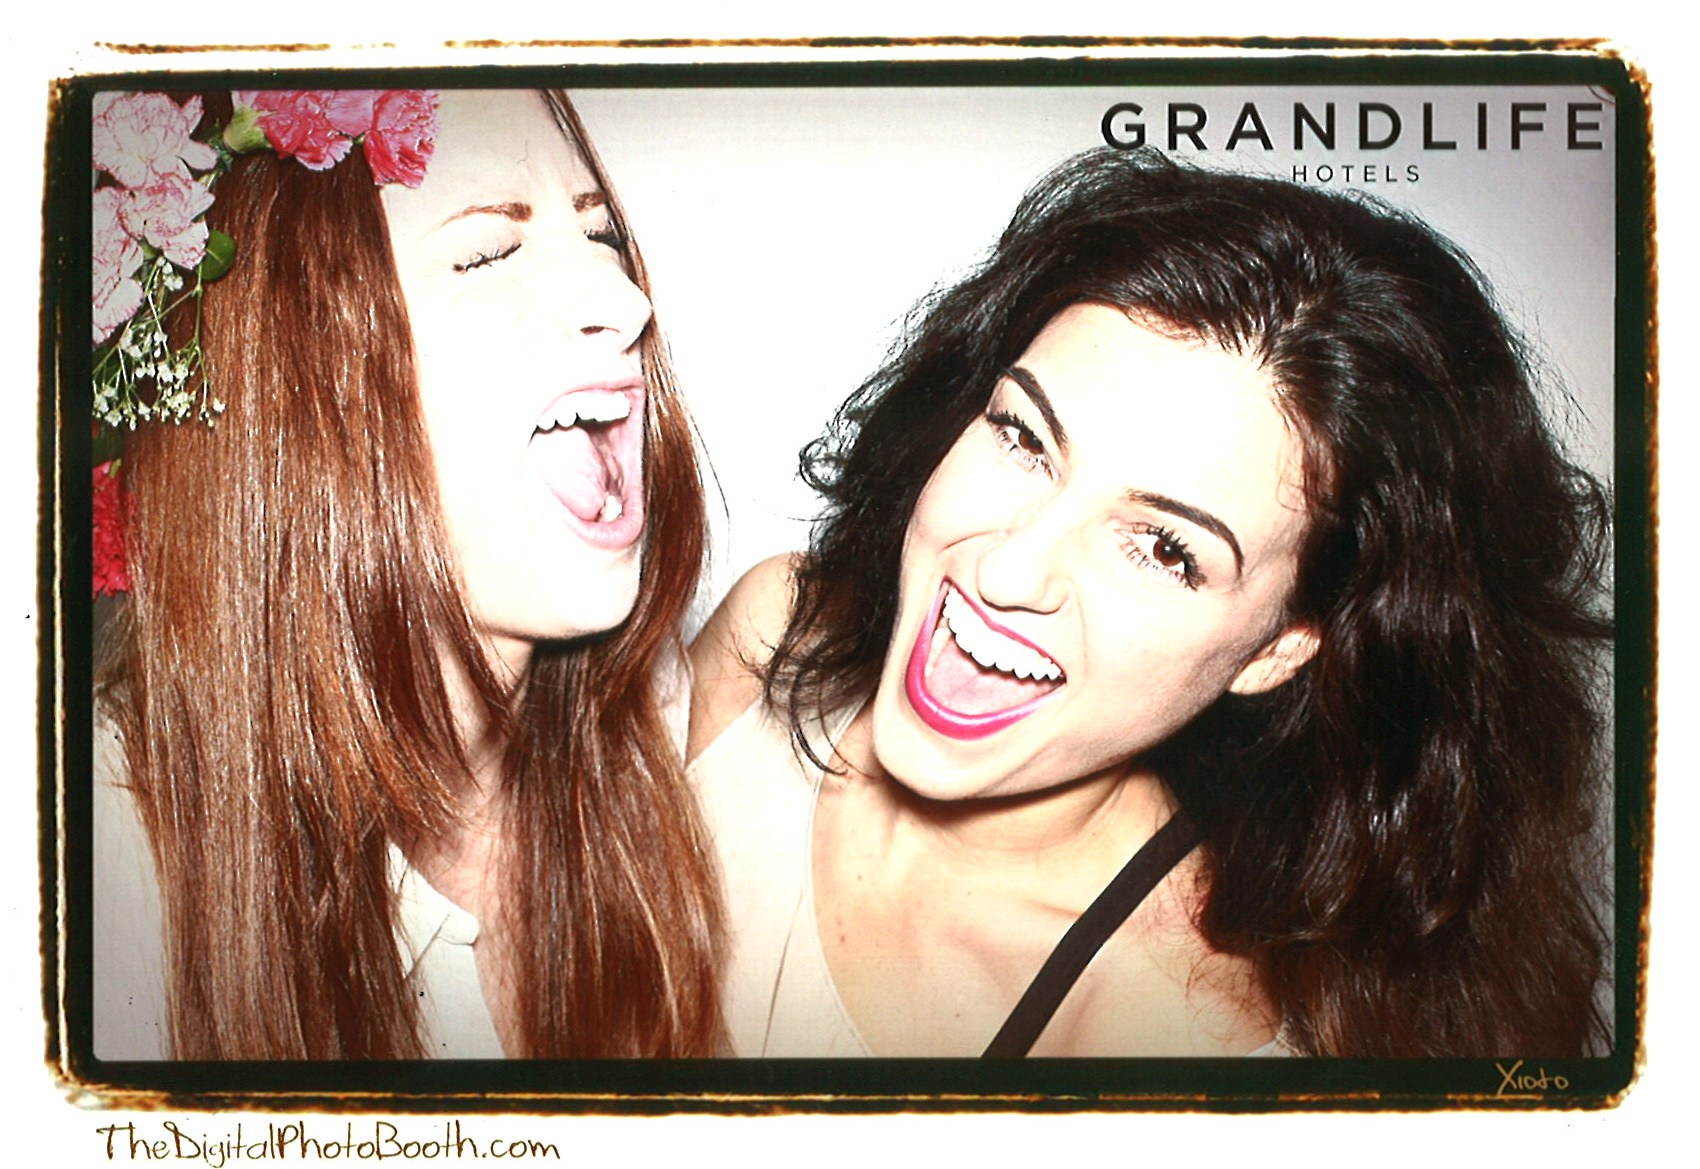 Blind-Stab-Photobooth-Dana-Suchow-Midsummer-Party-Grandlife-Hotels-Soho-Grand